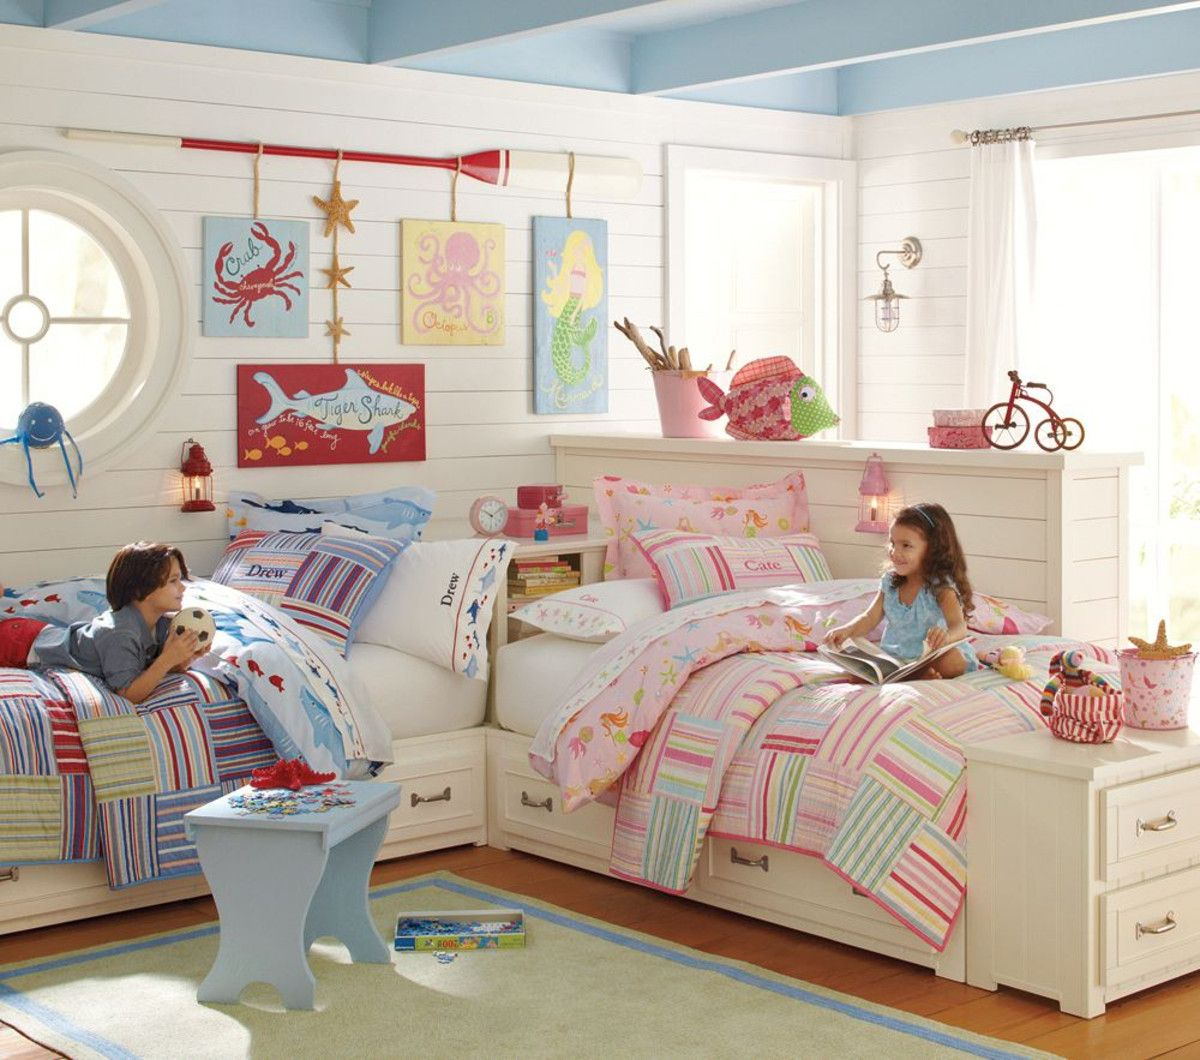 Belden Bed and Corner Unit Pottery Barn Kids Australia